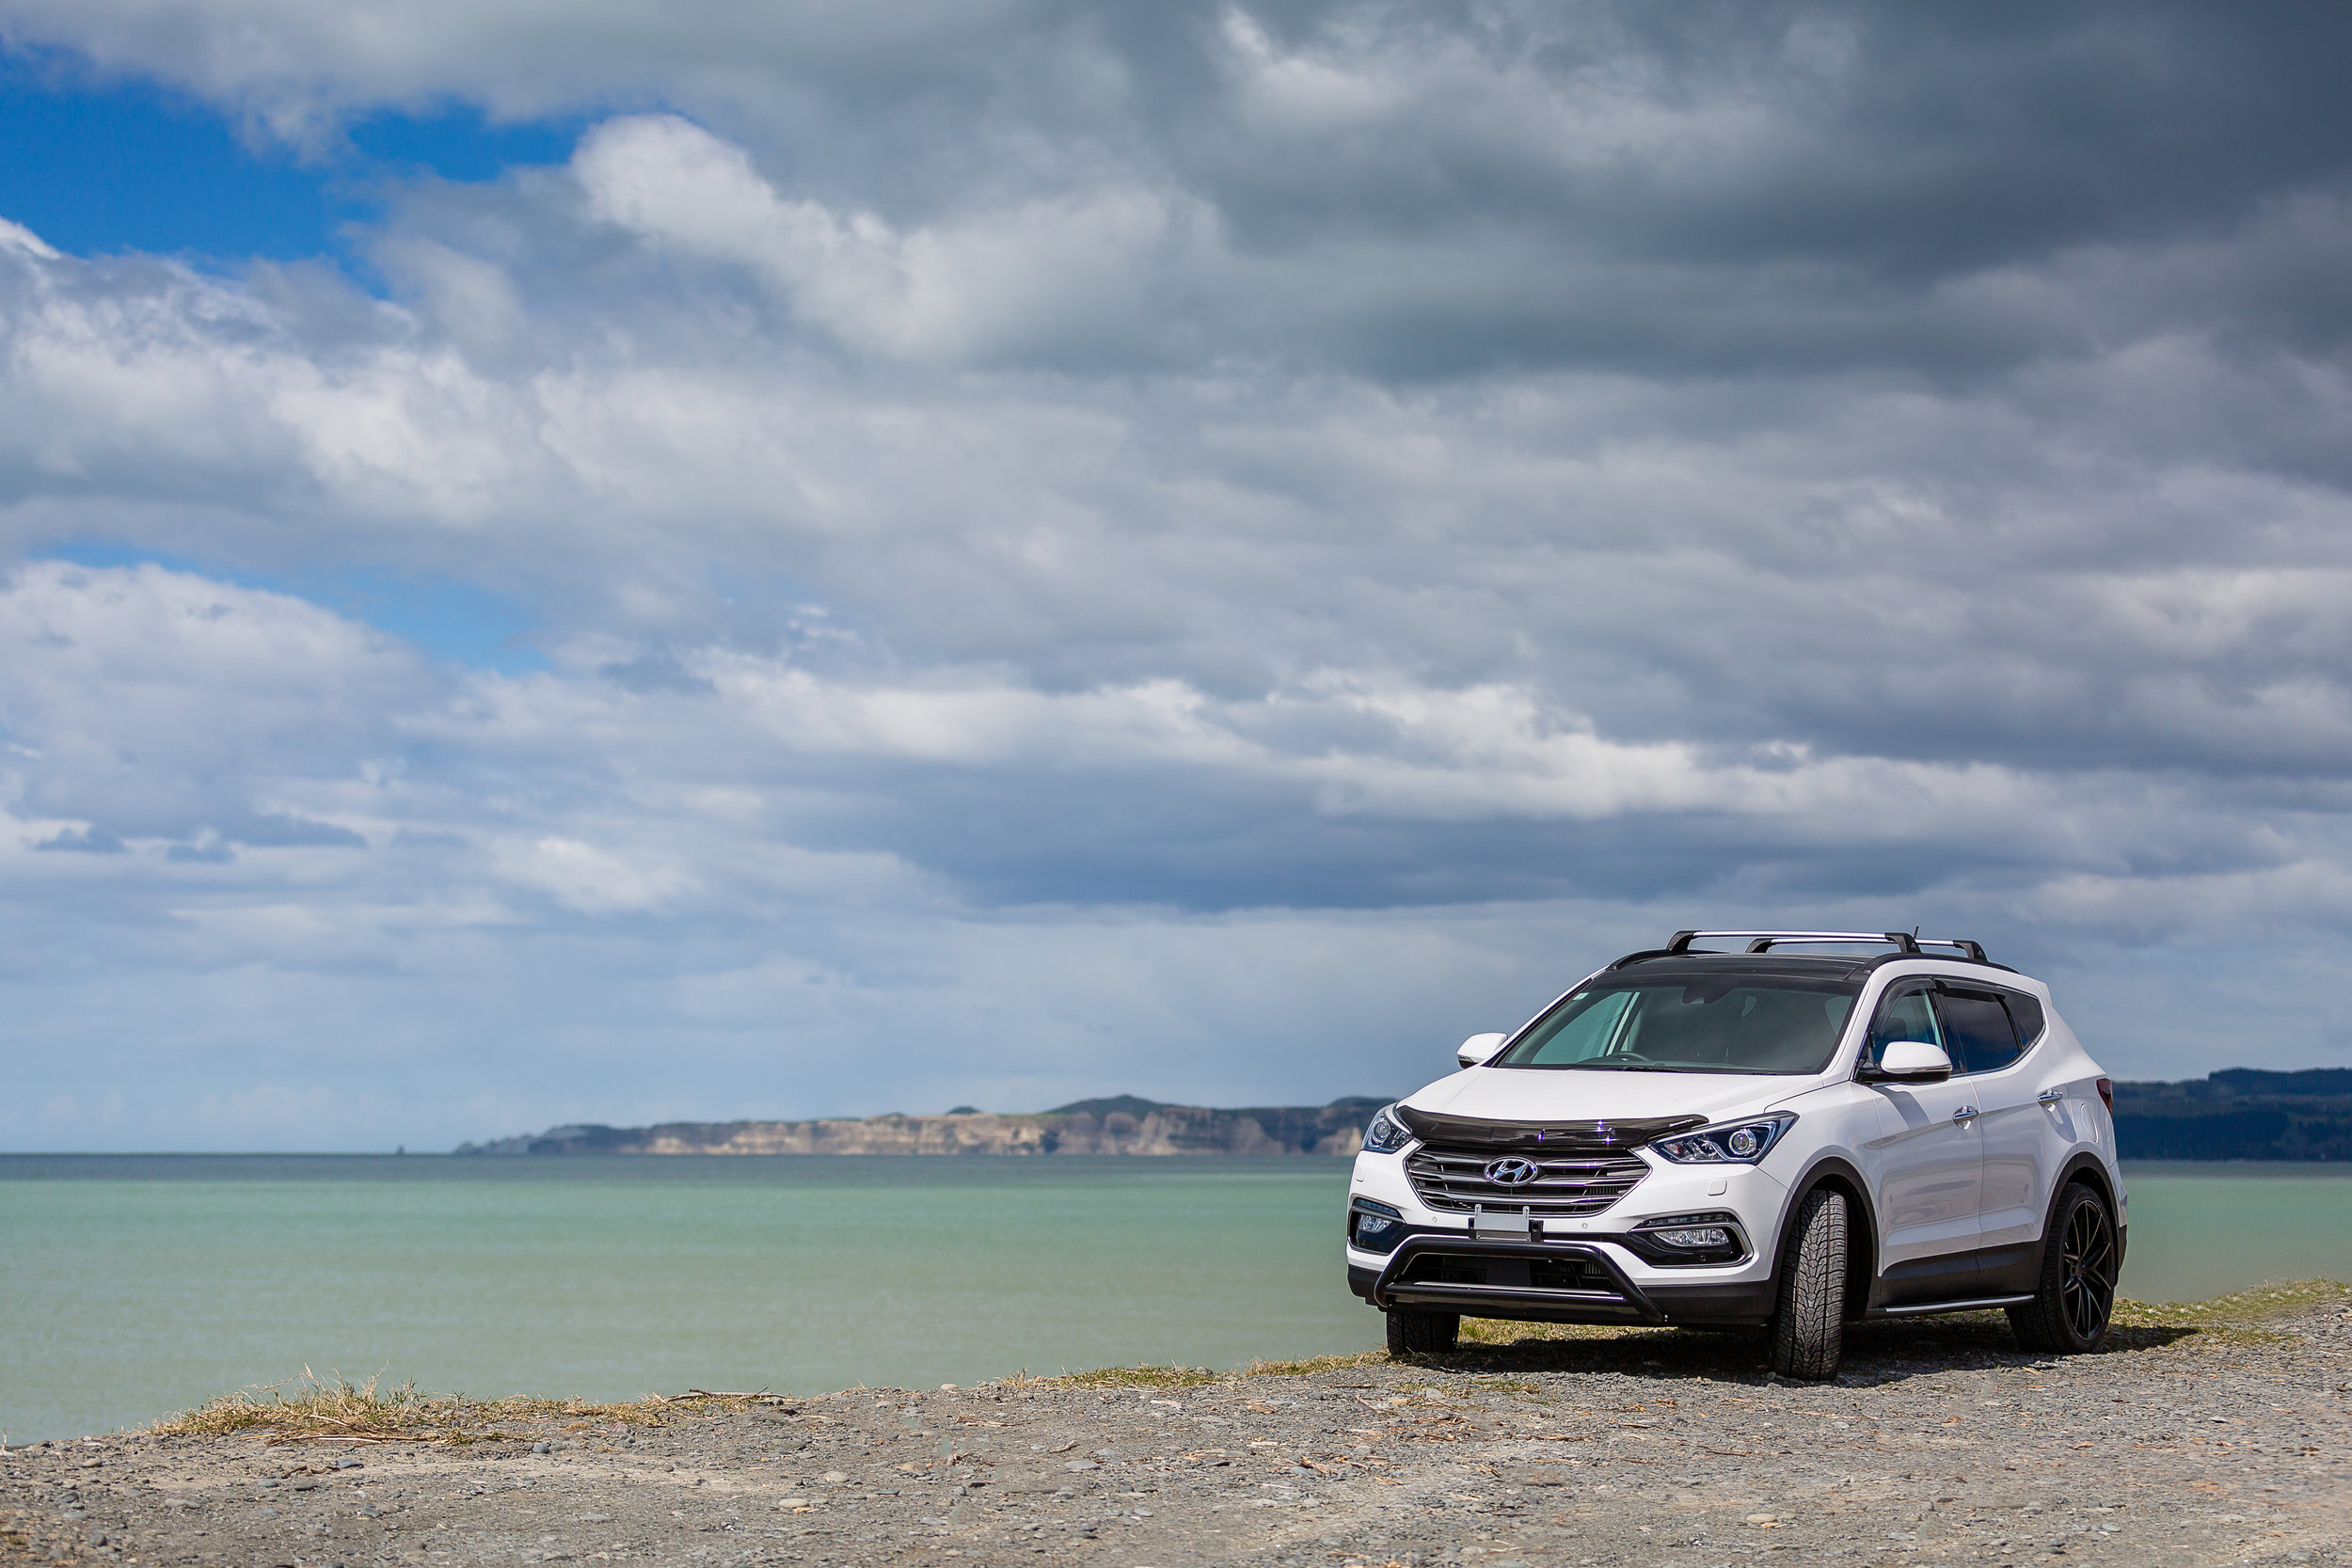 Hyundai SantaFe at the beach with Hawke Bay and Cape Kidnappers as a backdrop